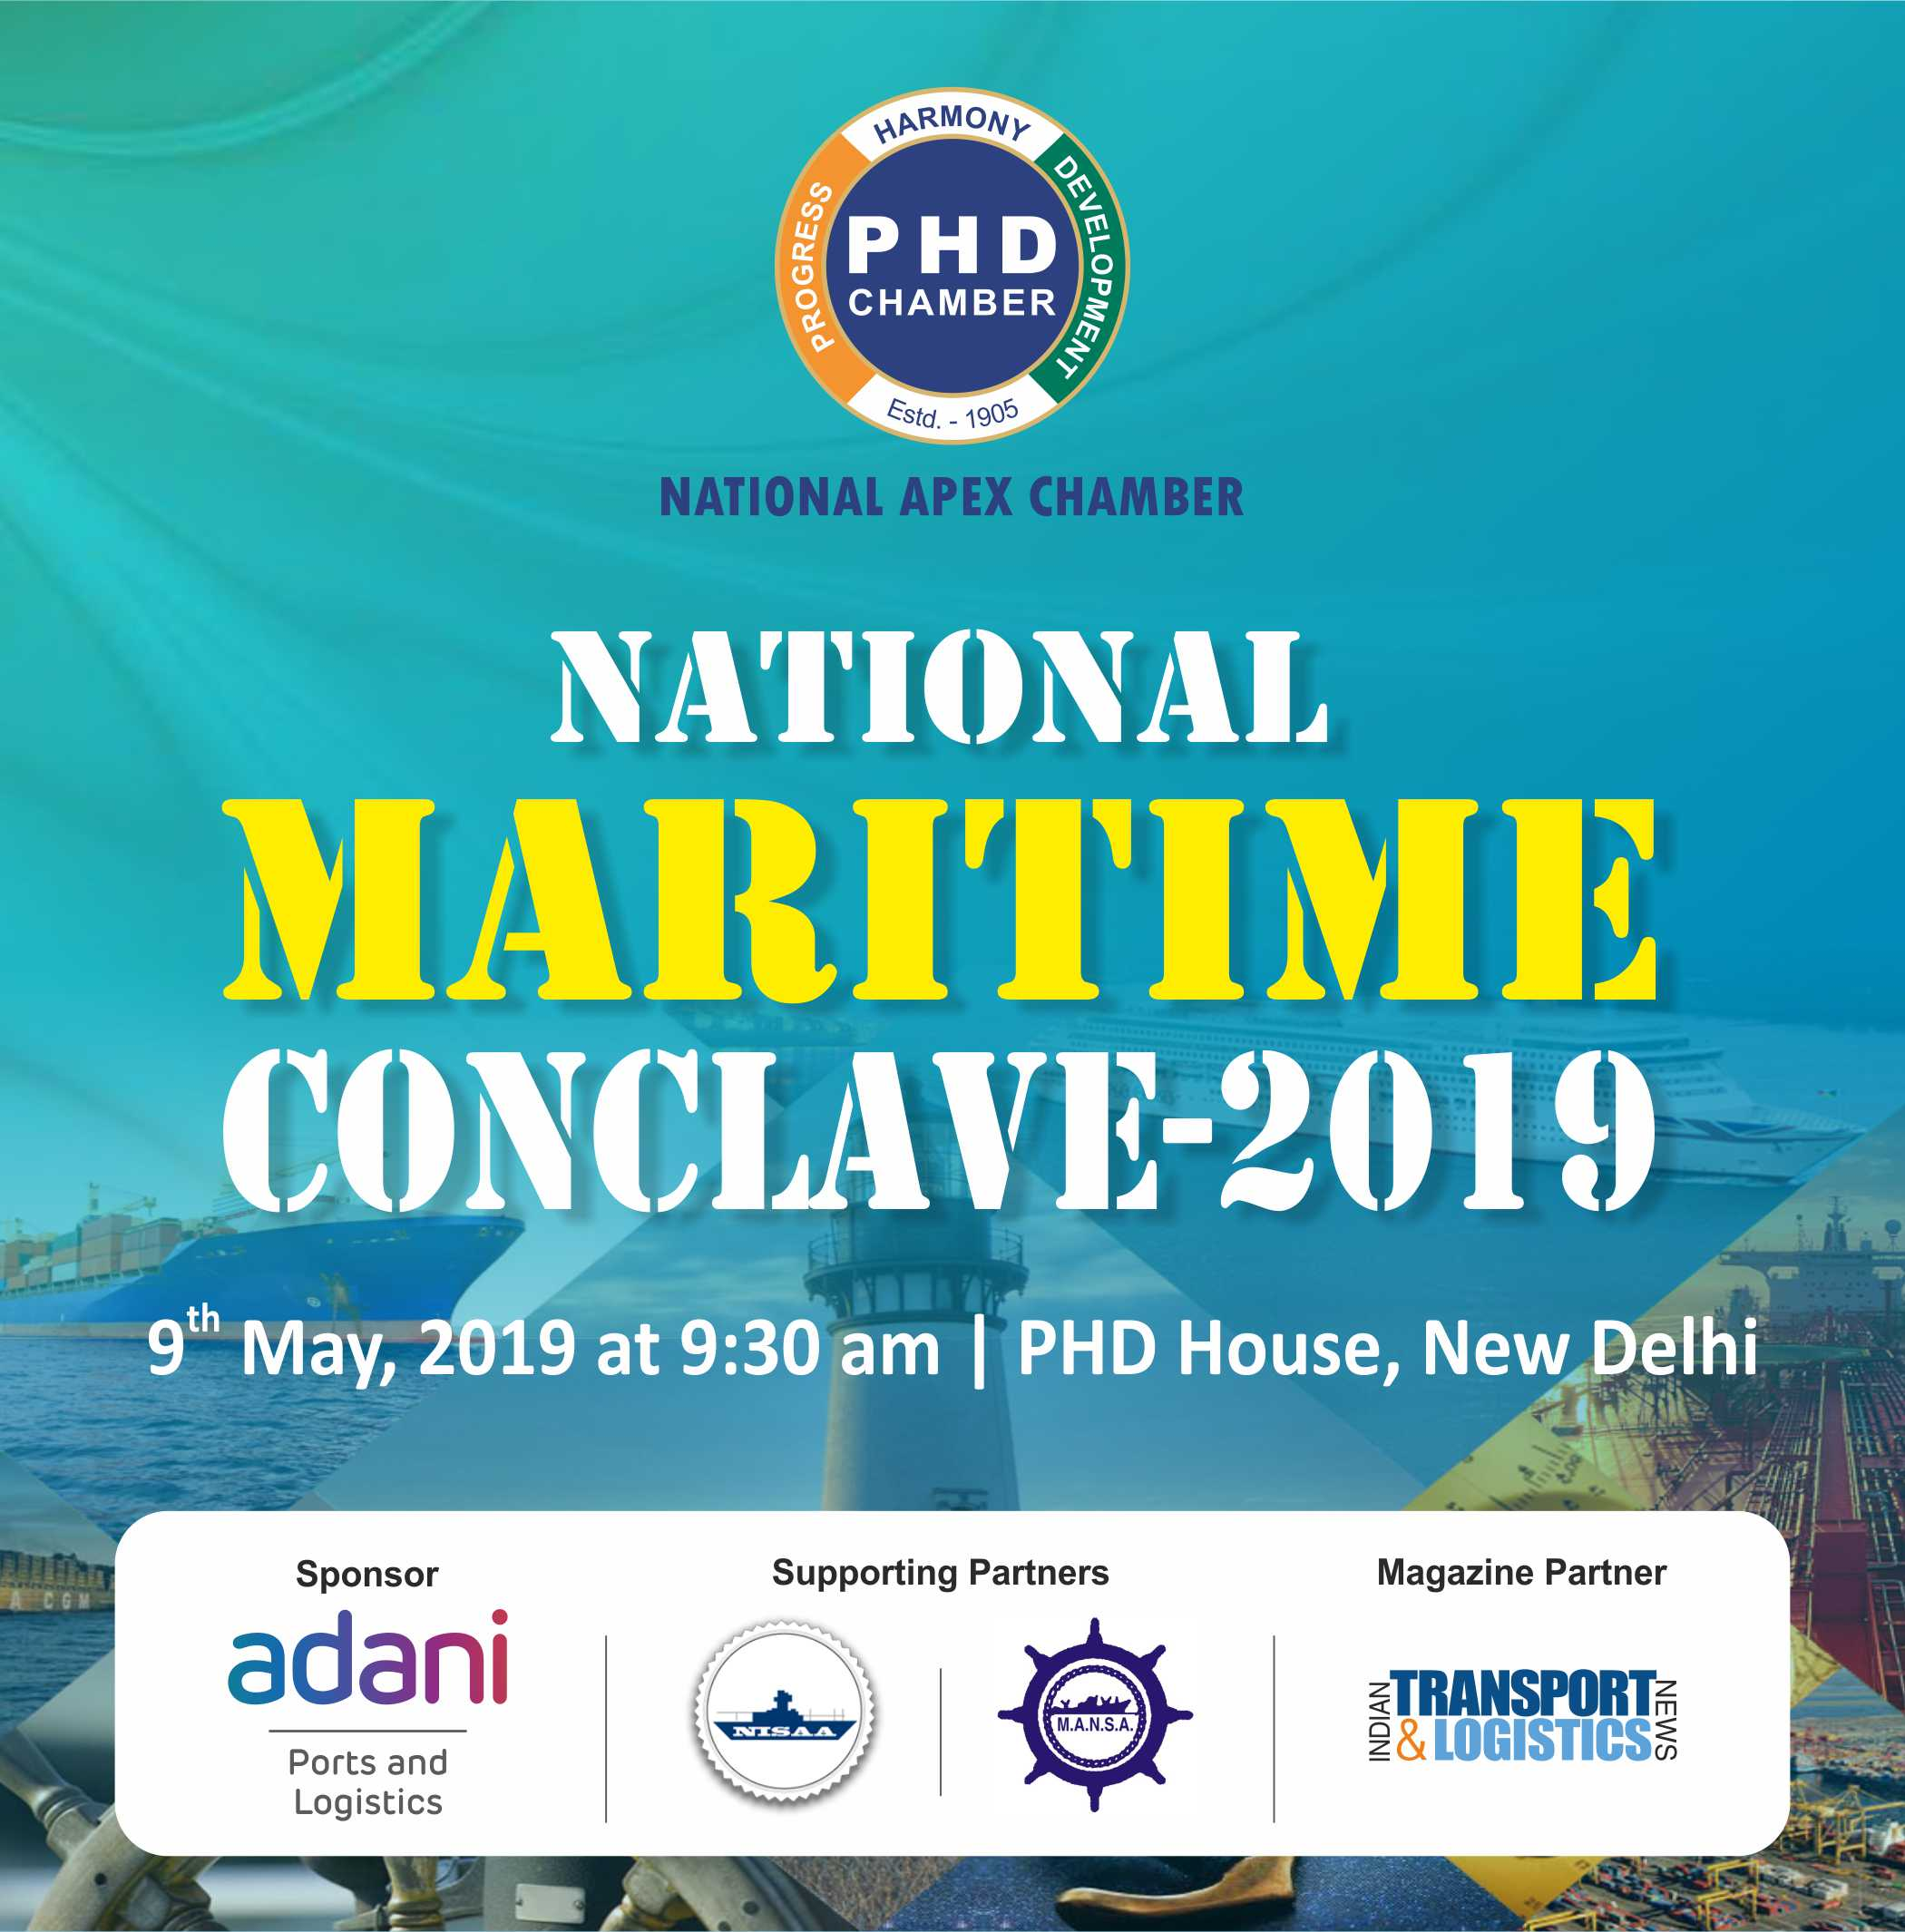 National Maritime Conclave 2019